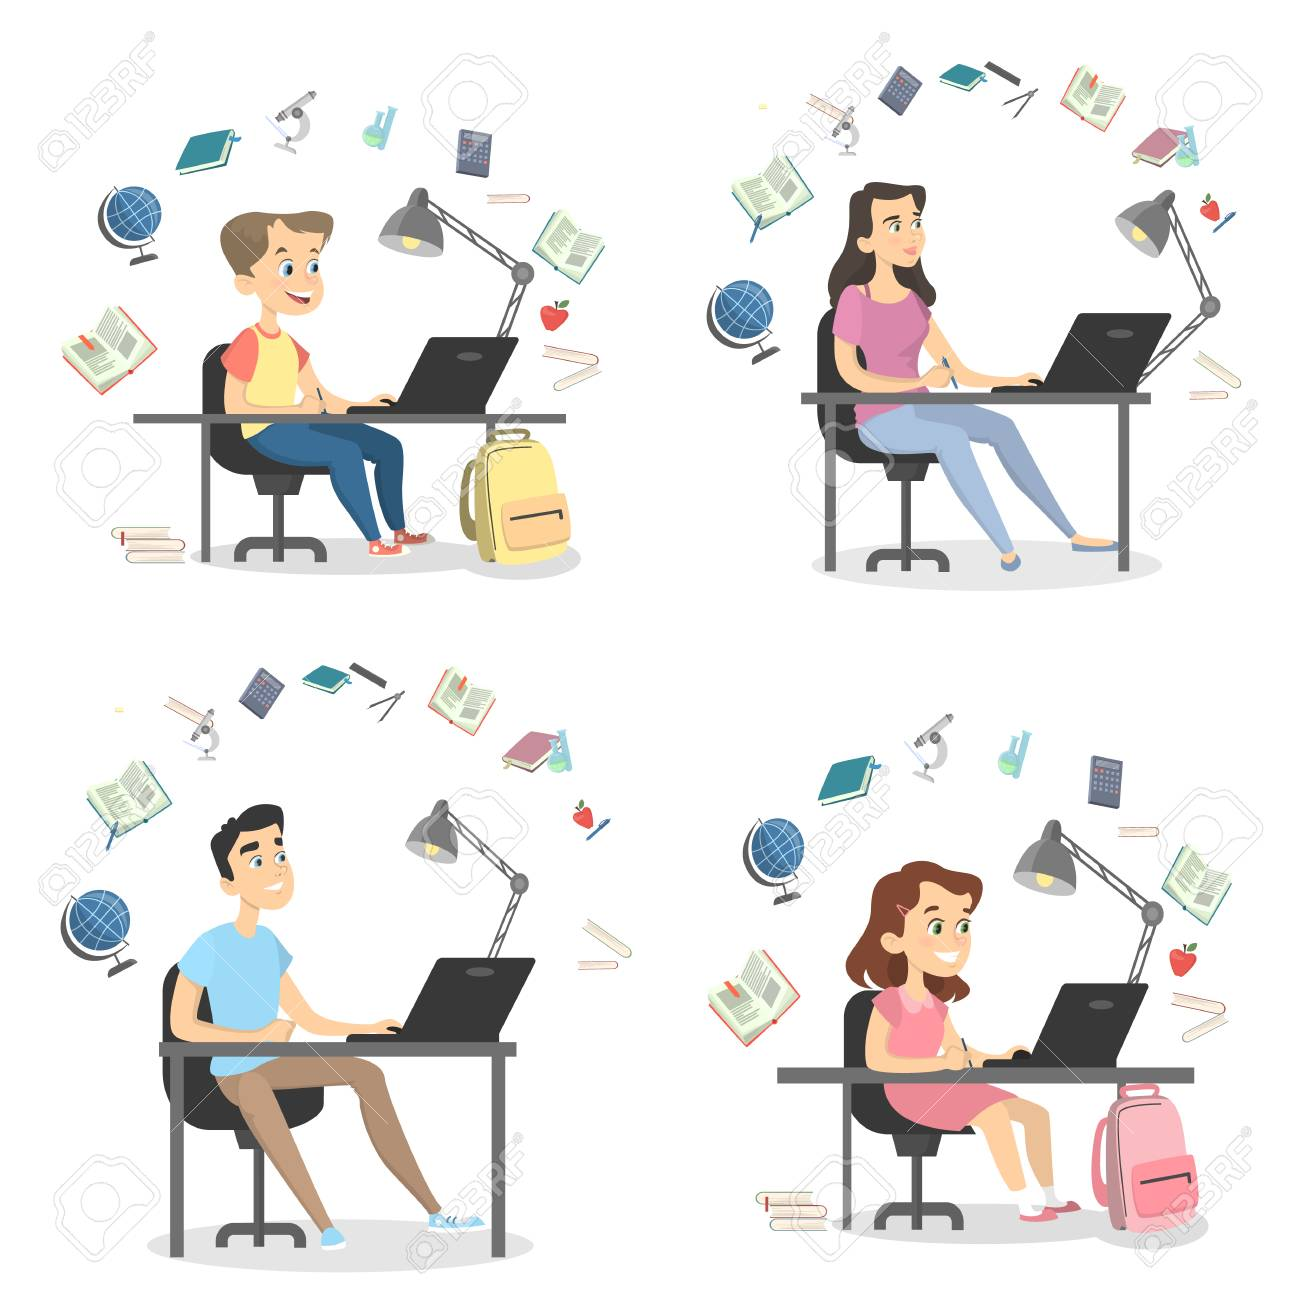 Four people studying set. - 95842073